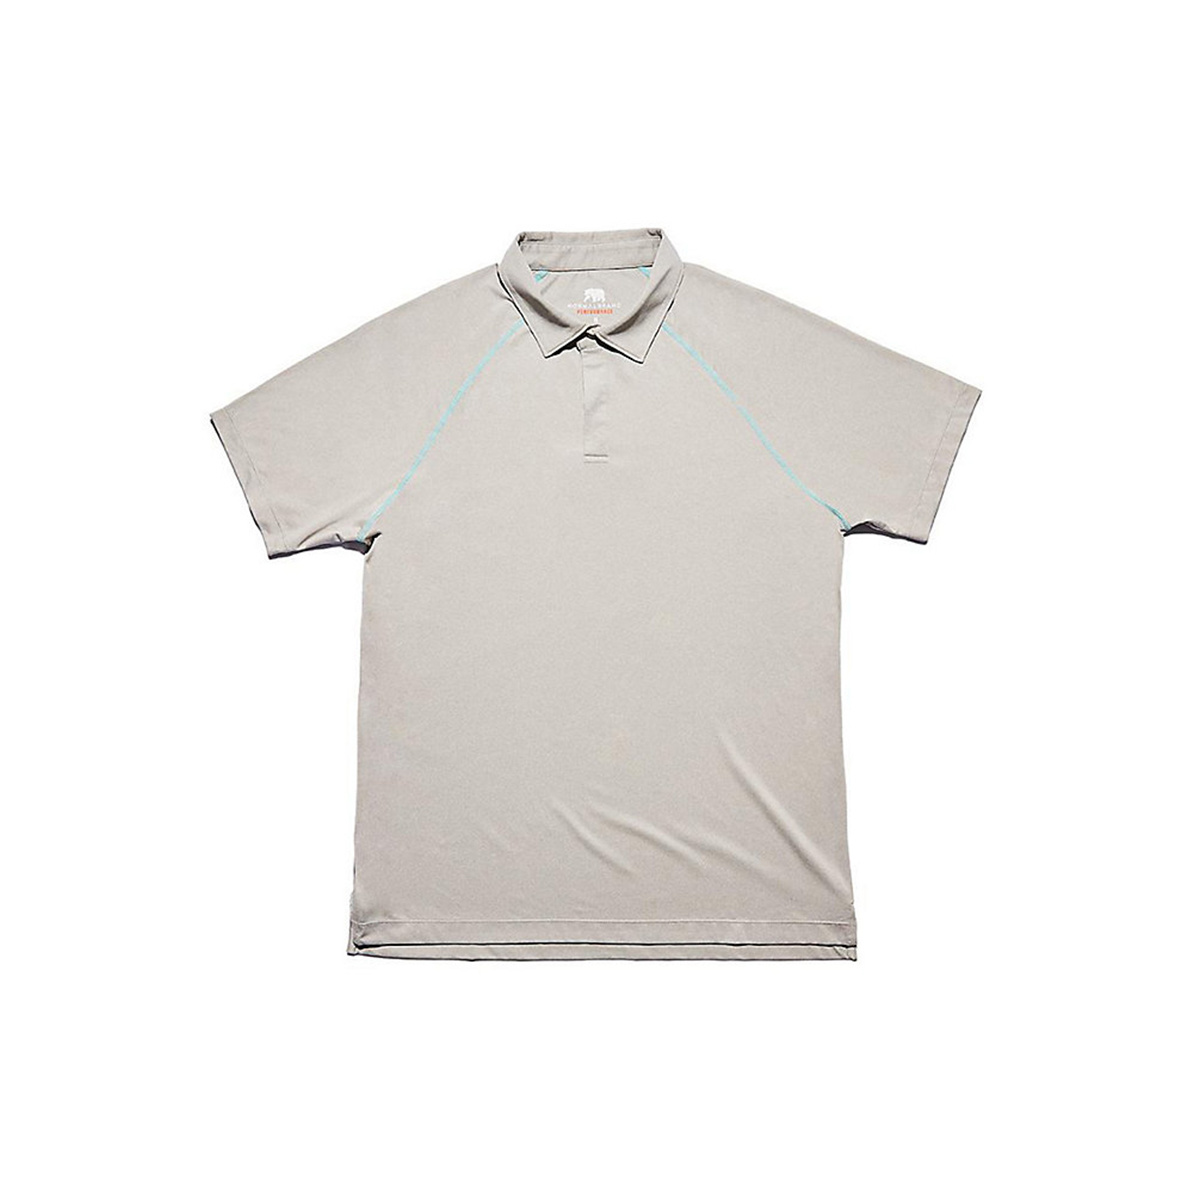 The Normal Brand Men's Performance Polo